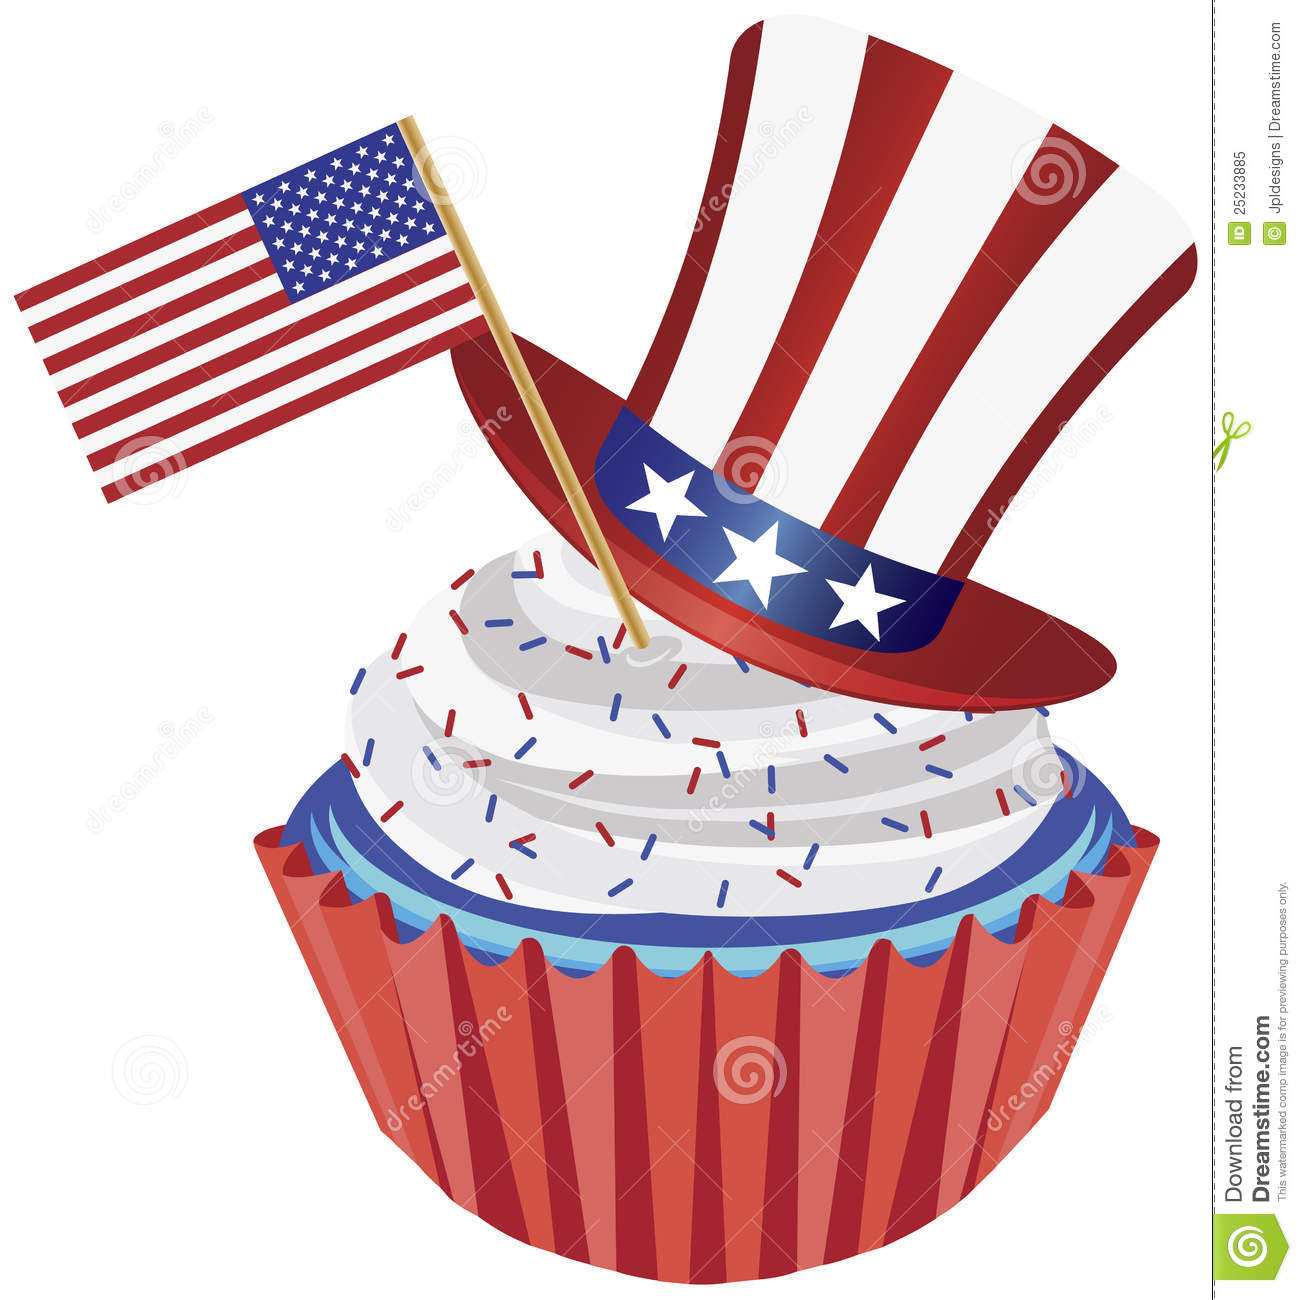 hight resolution of 1302x1300 cake clipart 4th july